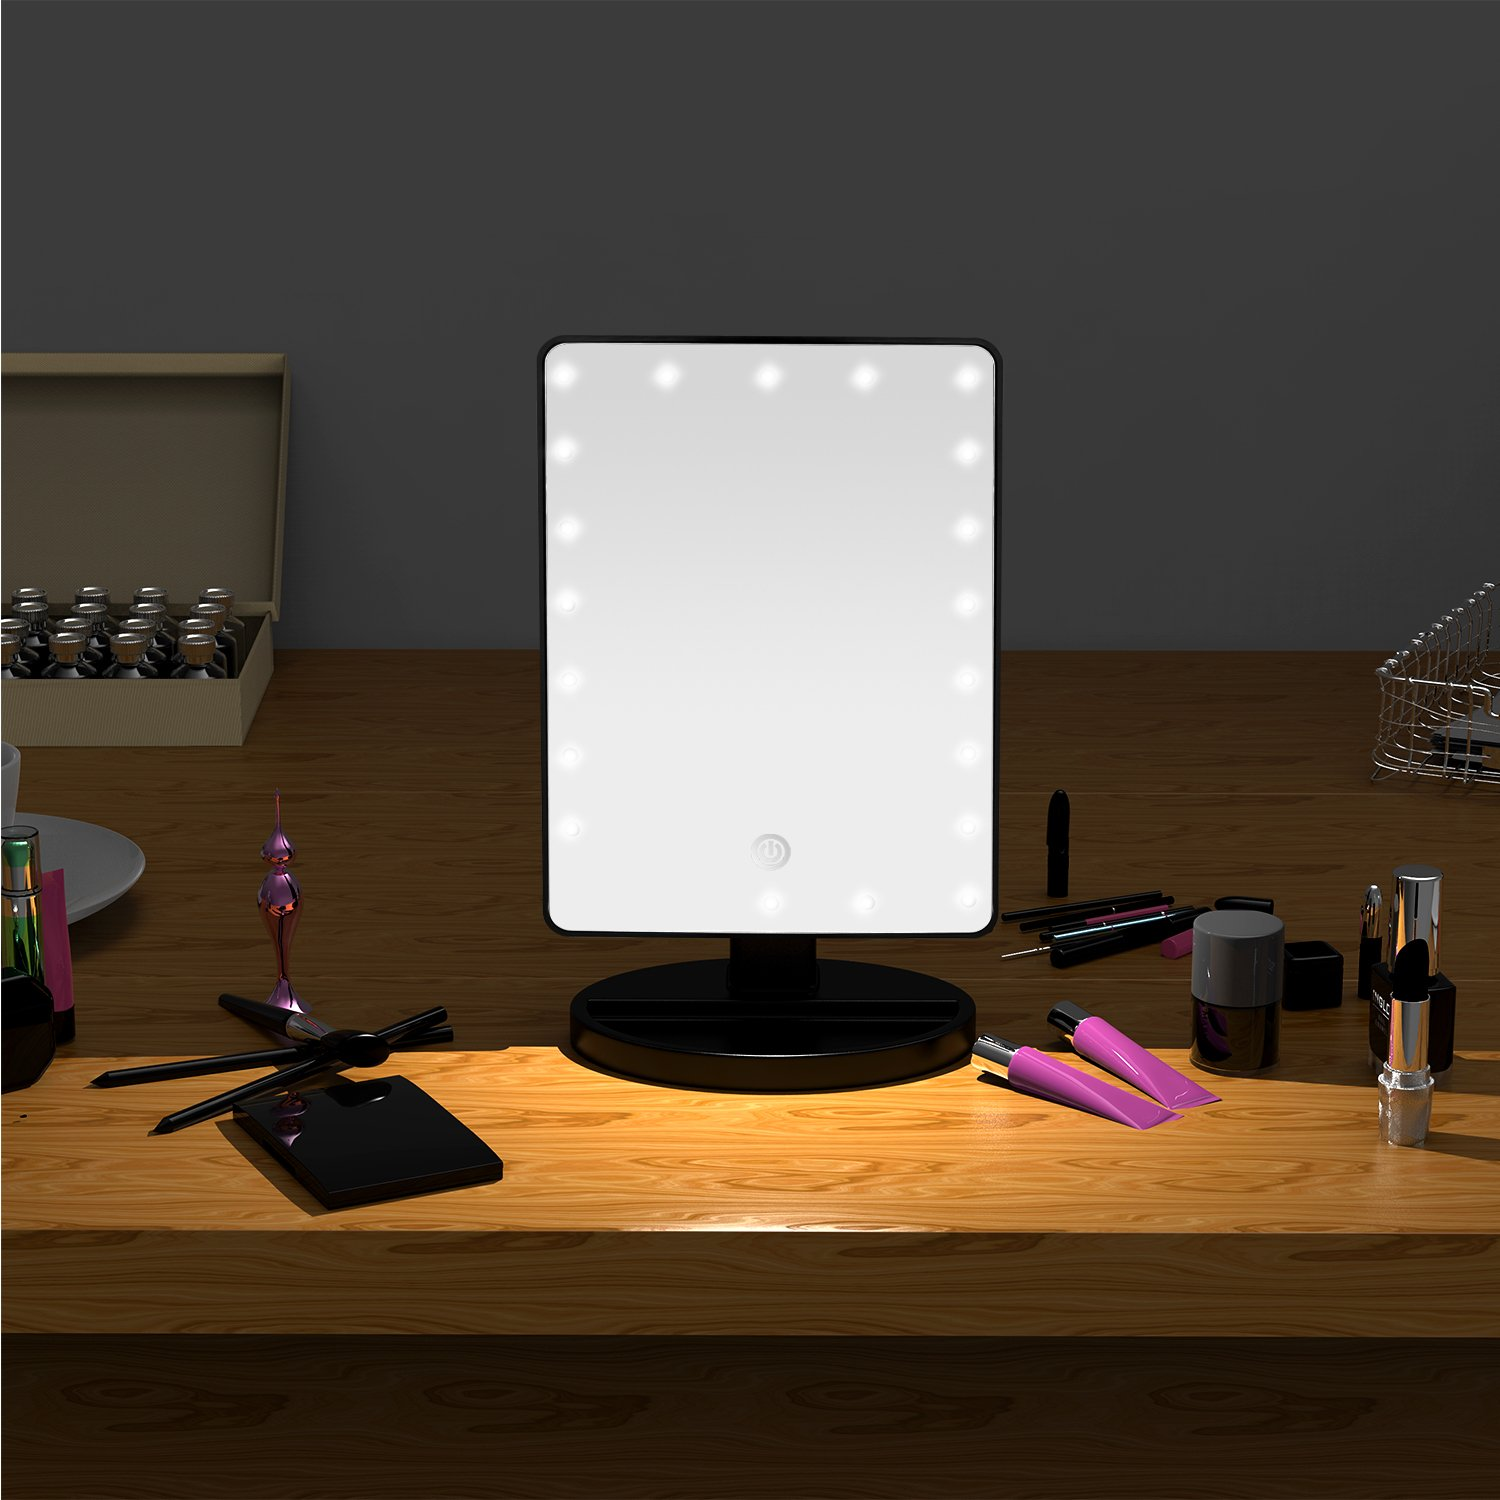 Lighted Makeup Mirror Led Touch Sensor Dimming Vanity Mirror/Cosmetic Mirror with Organizer Base Detachable 10X Magnification Battery/USB for Power (Black)